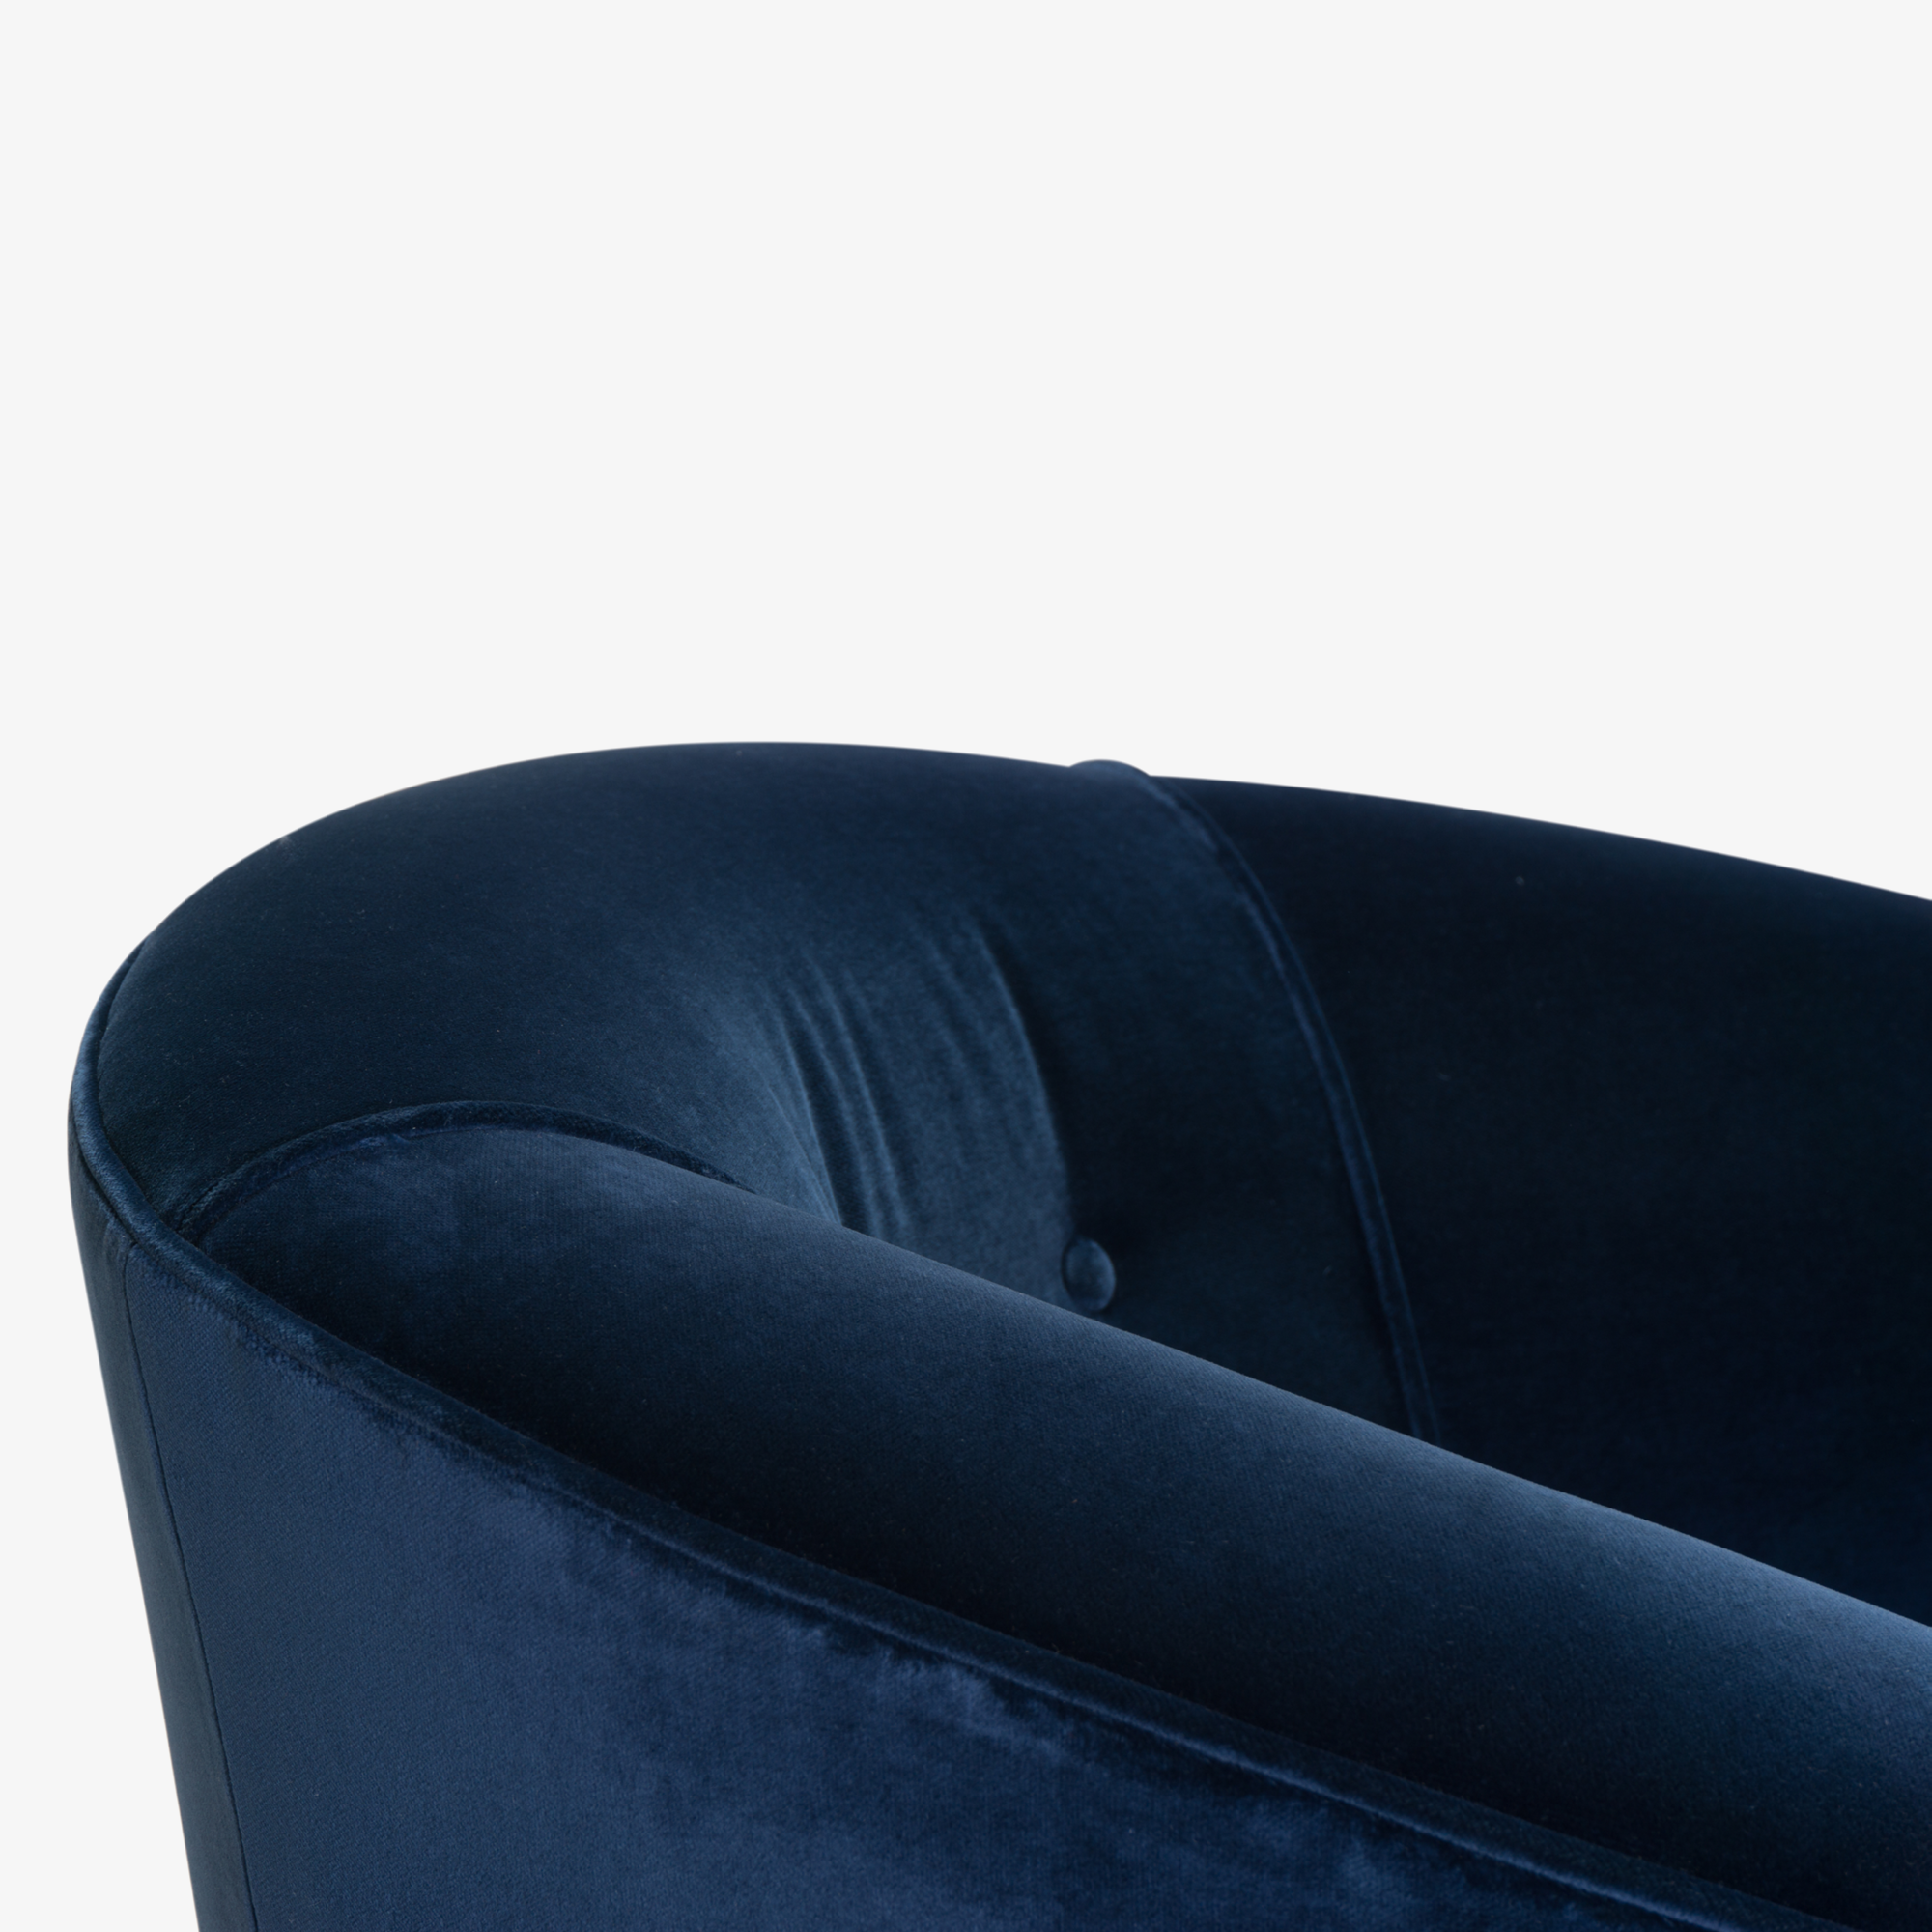 Swivel Tub Chairs in Navy Velvet with Polished Brass Bases, Pair7.png